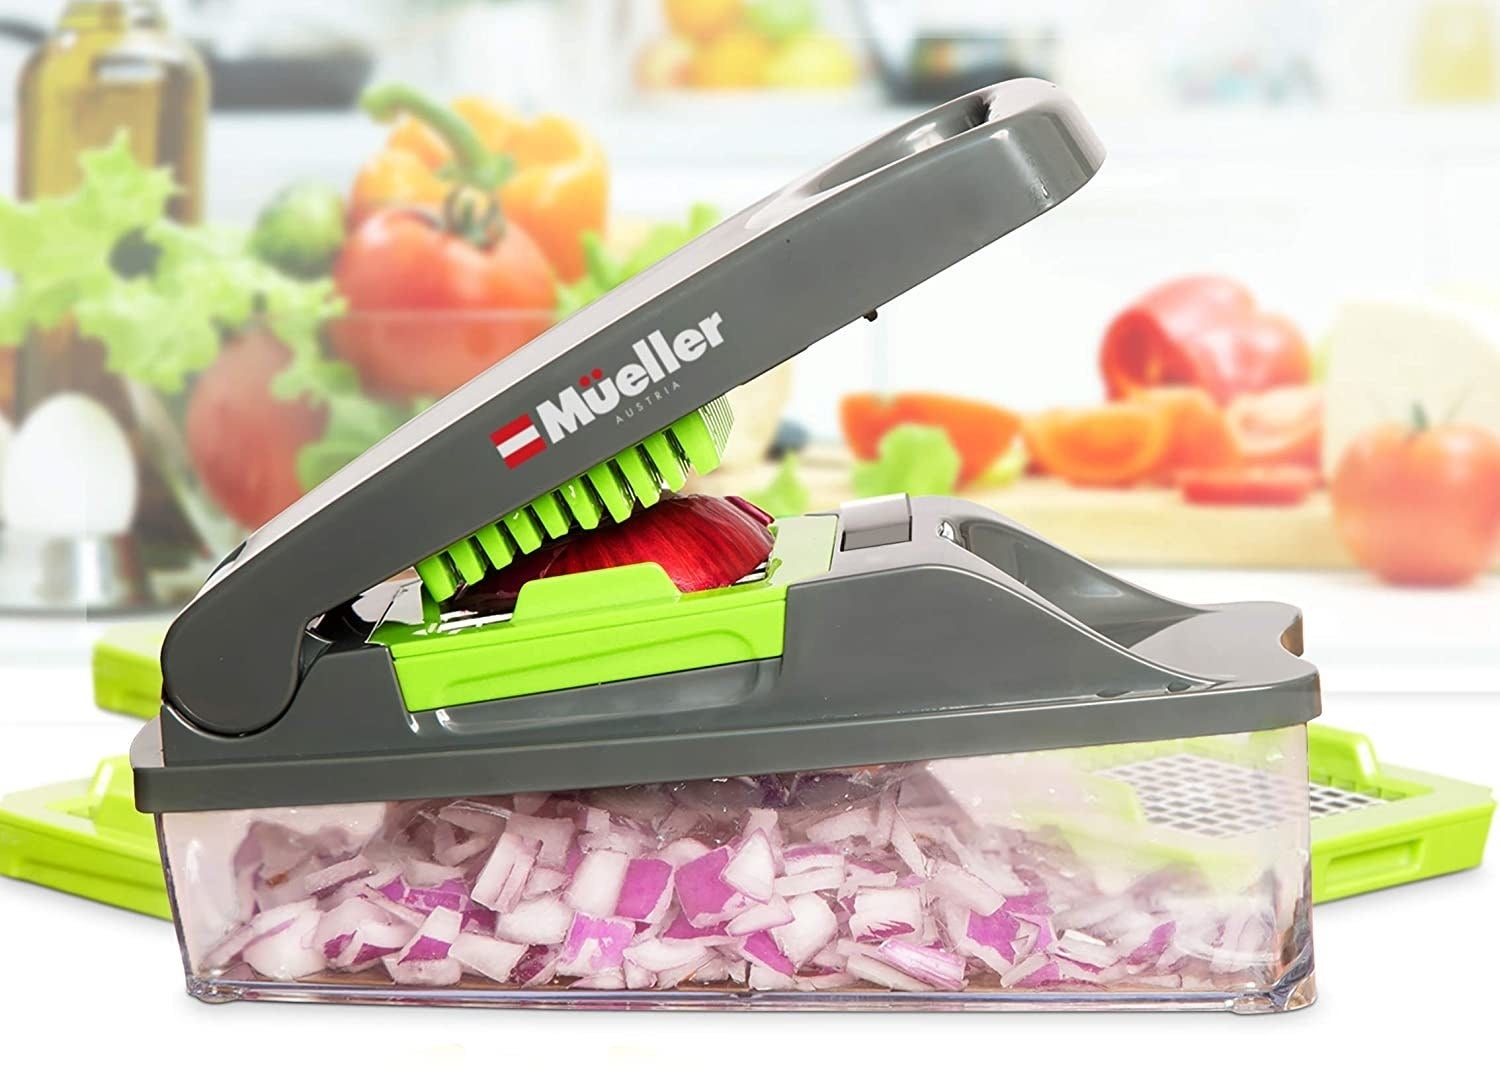 a rectangular chopper in which you place the vegetable in the top and the pieces go into a plastic container underneath